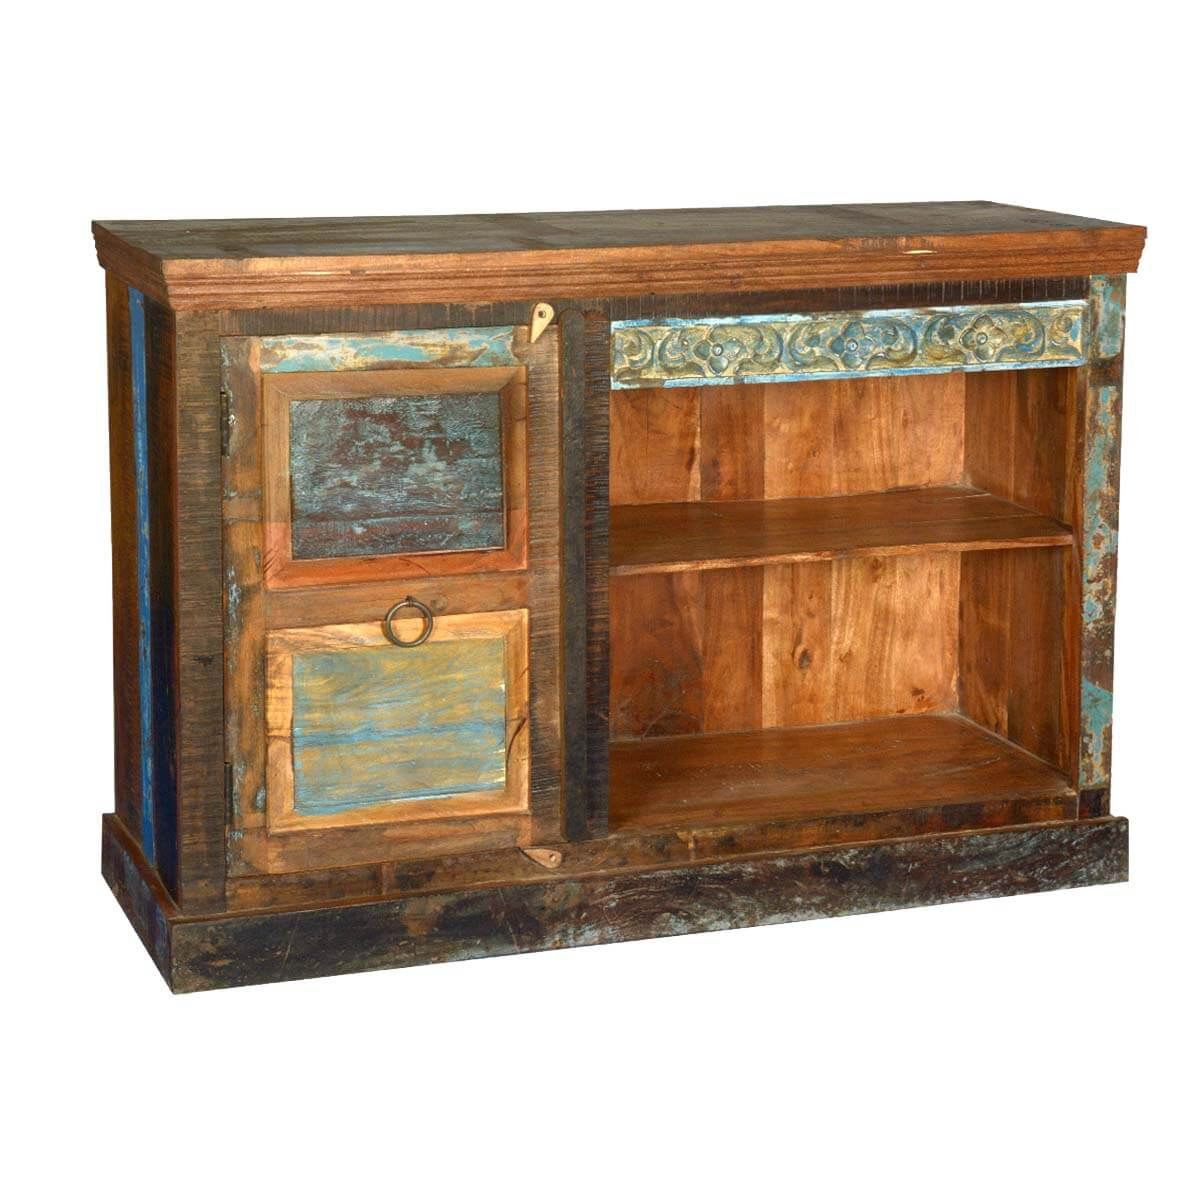 Drakensberg Distressed Old Reclaimed Wood Media Console TV Stand